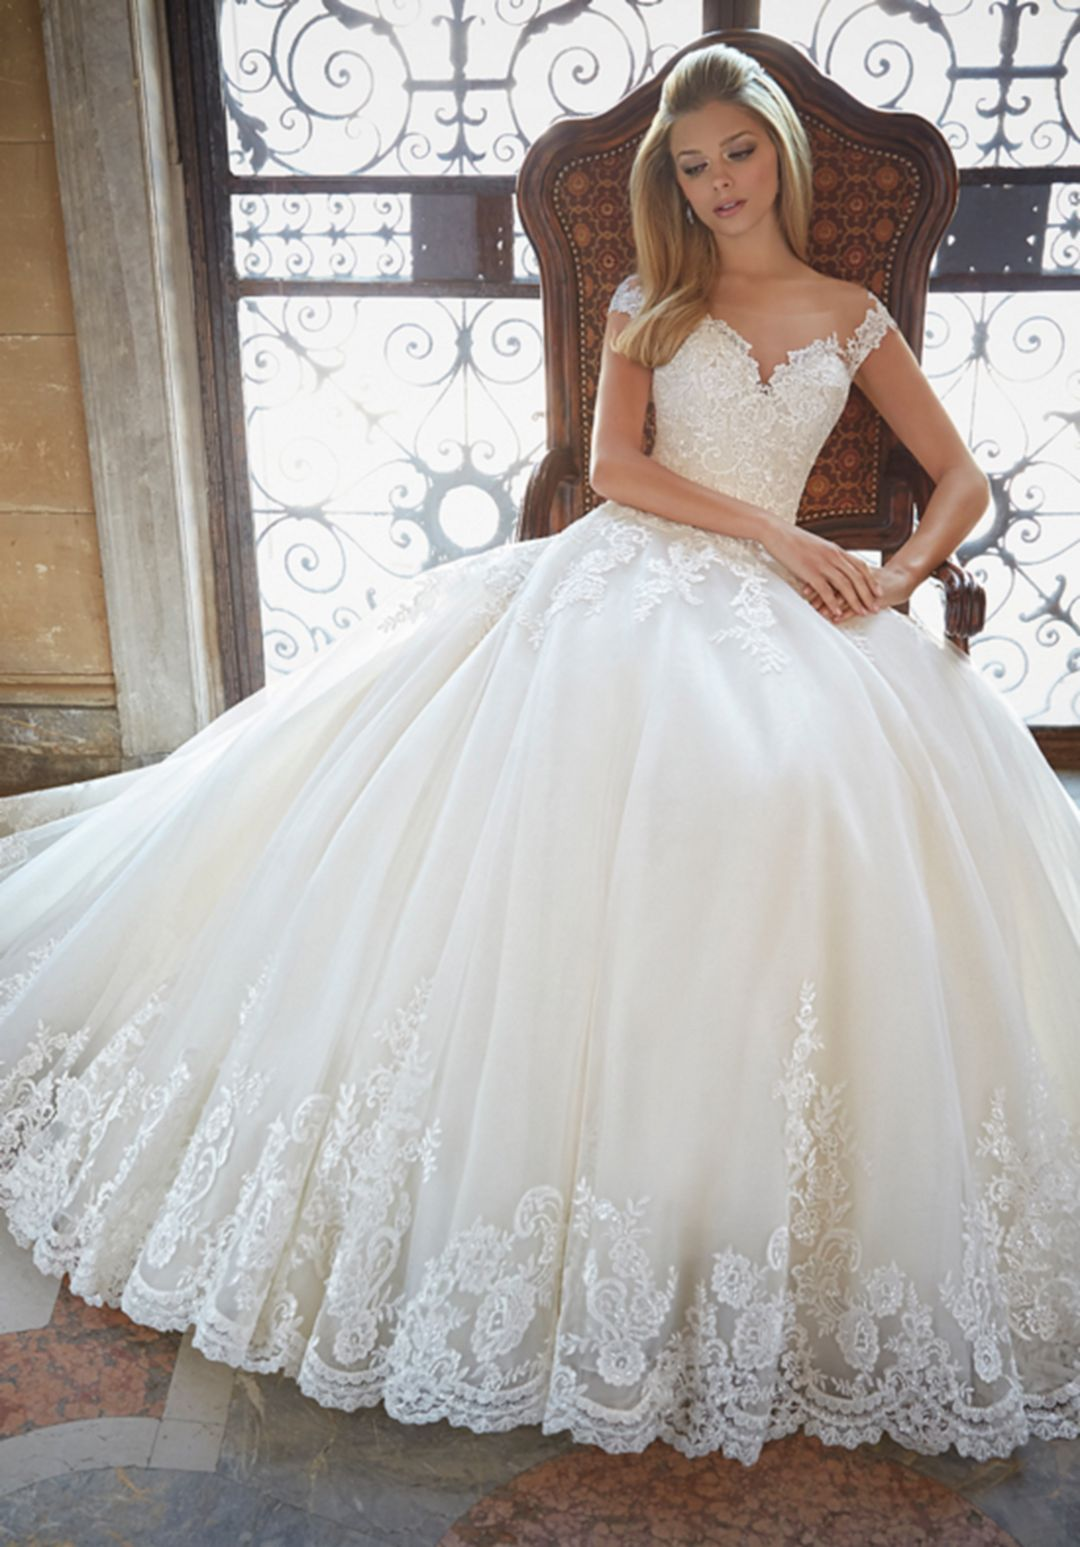 Cool 55 Most Beautiful White Wedding Dress Ball Gown Ideas For The Wondrous Bride S: Unique Ball Gown Wedding Dresses At Reisefeber.org